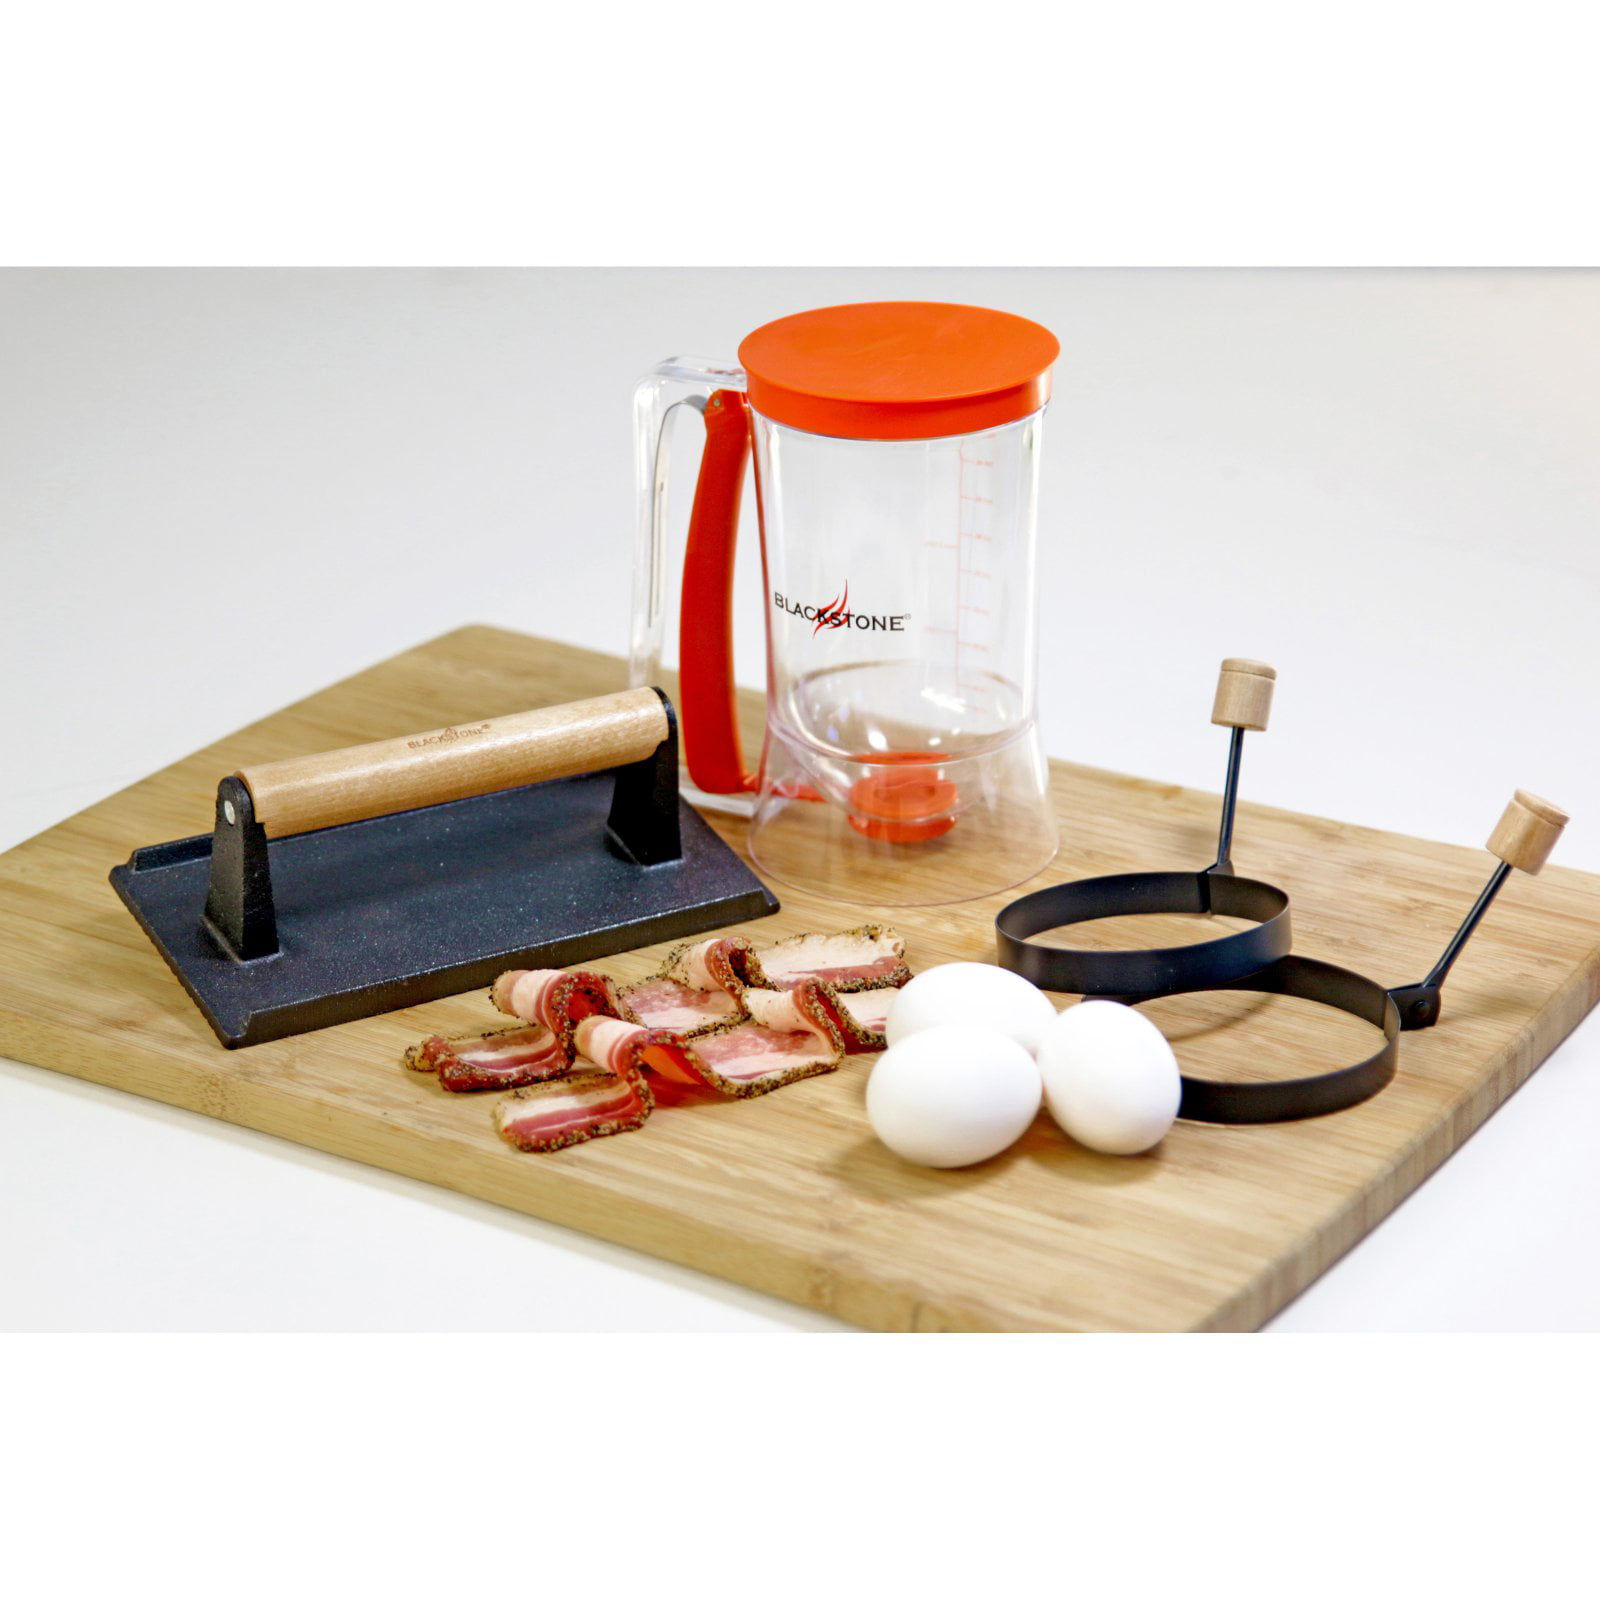 Blackstone 4-Piece Griddle Breakfast Kit by Blackstone